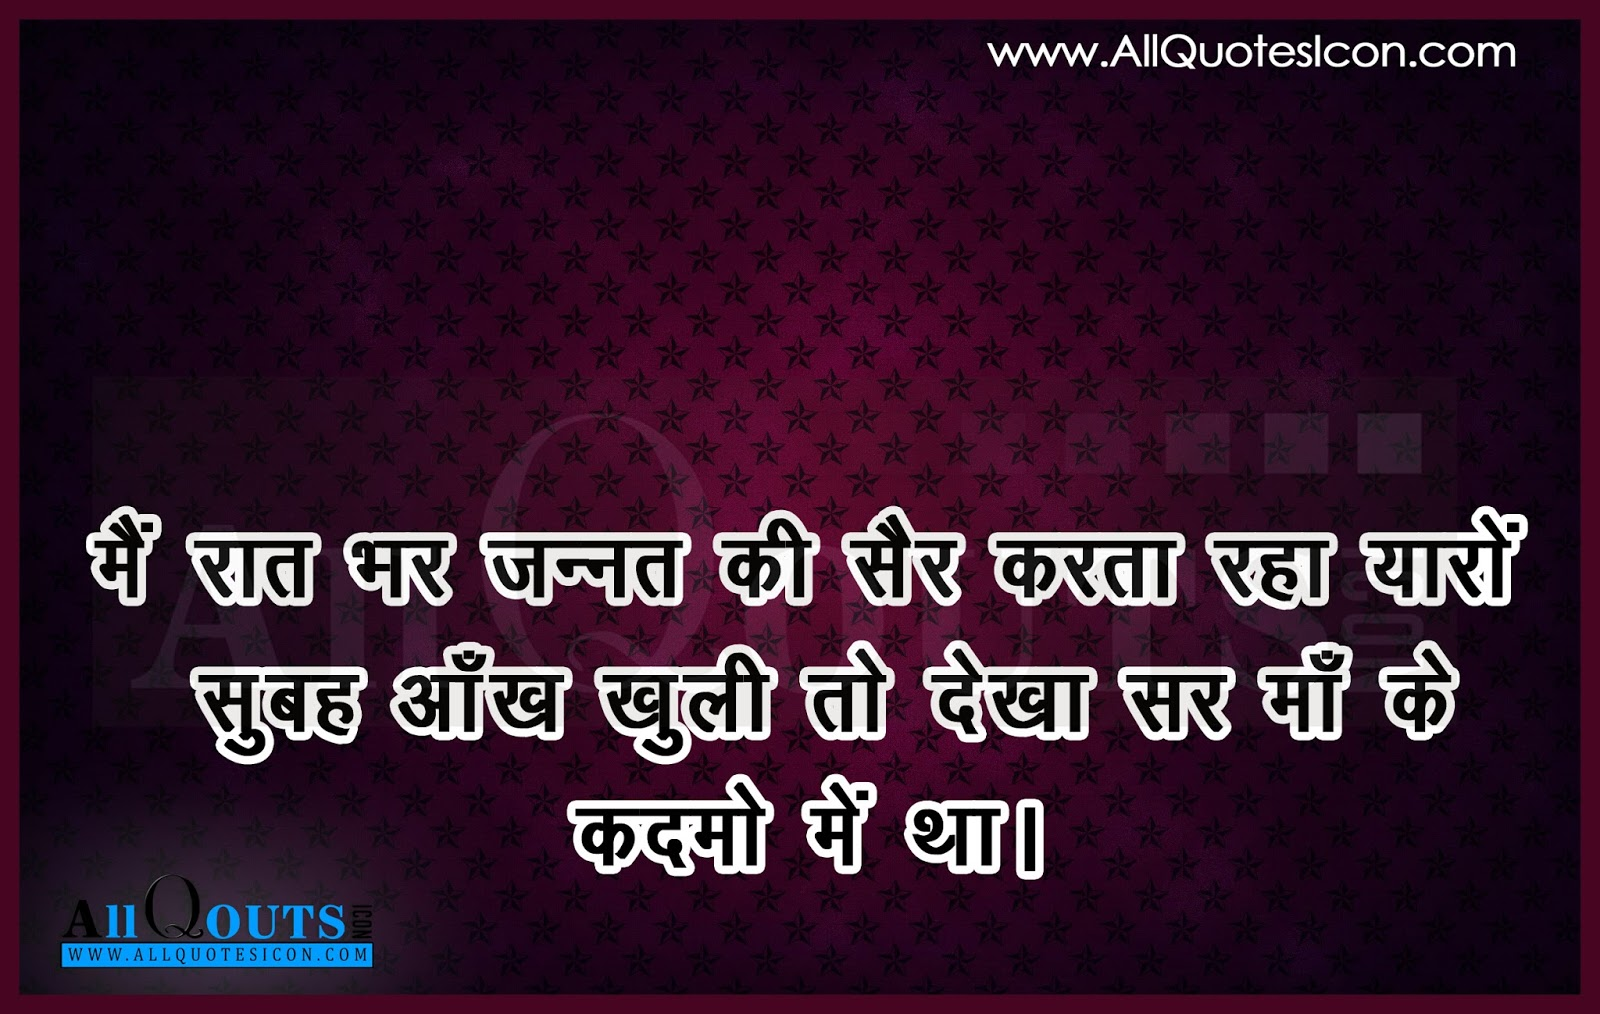 Hindi Whatsapp Quotes HD Wallpapers Best Life Inspiration ...